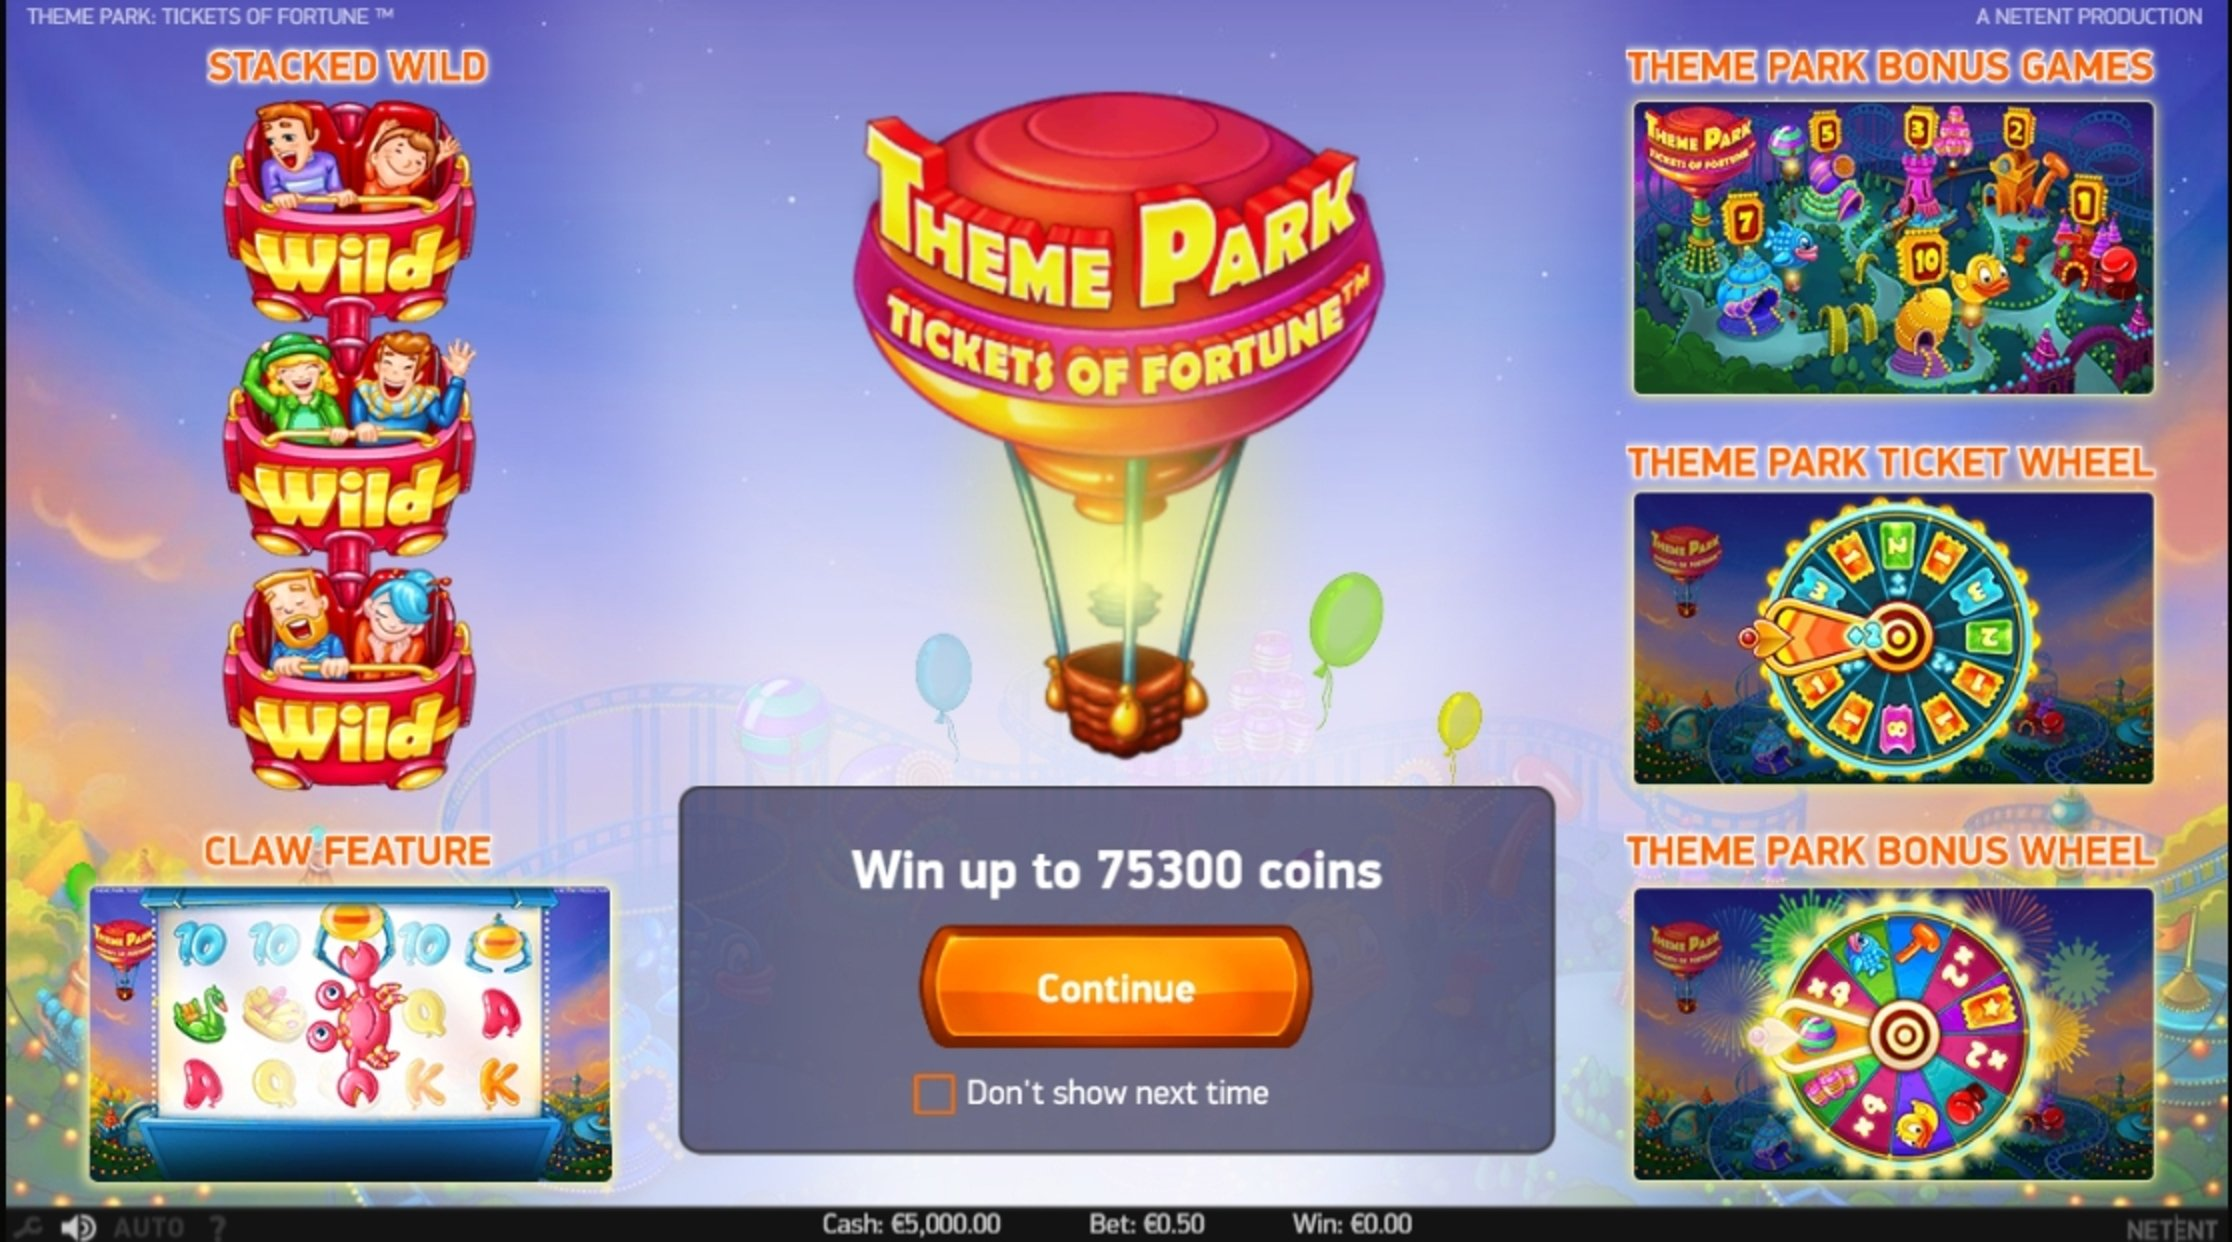 Play Theme Park: Tickets of Fortune Free Casino Slot Game by NetEnt